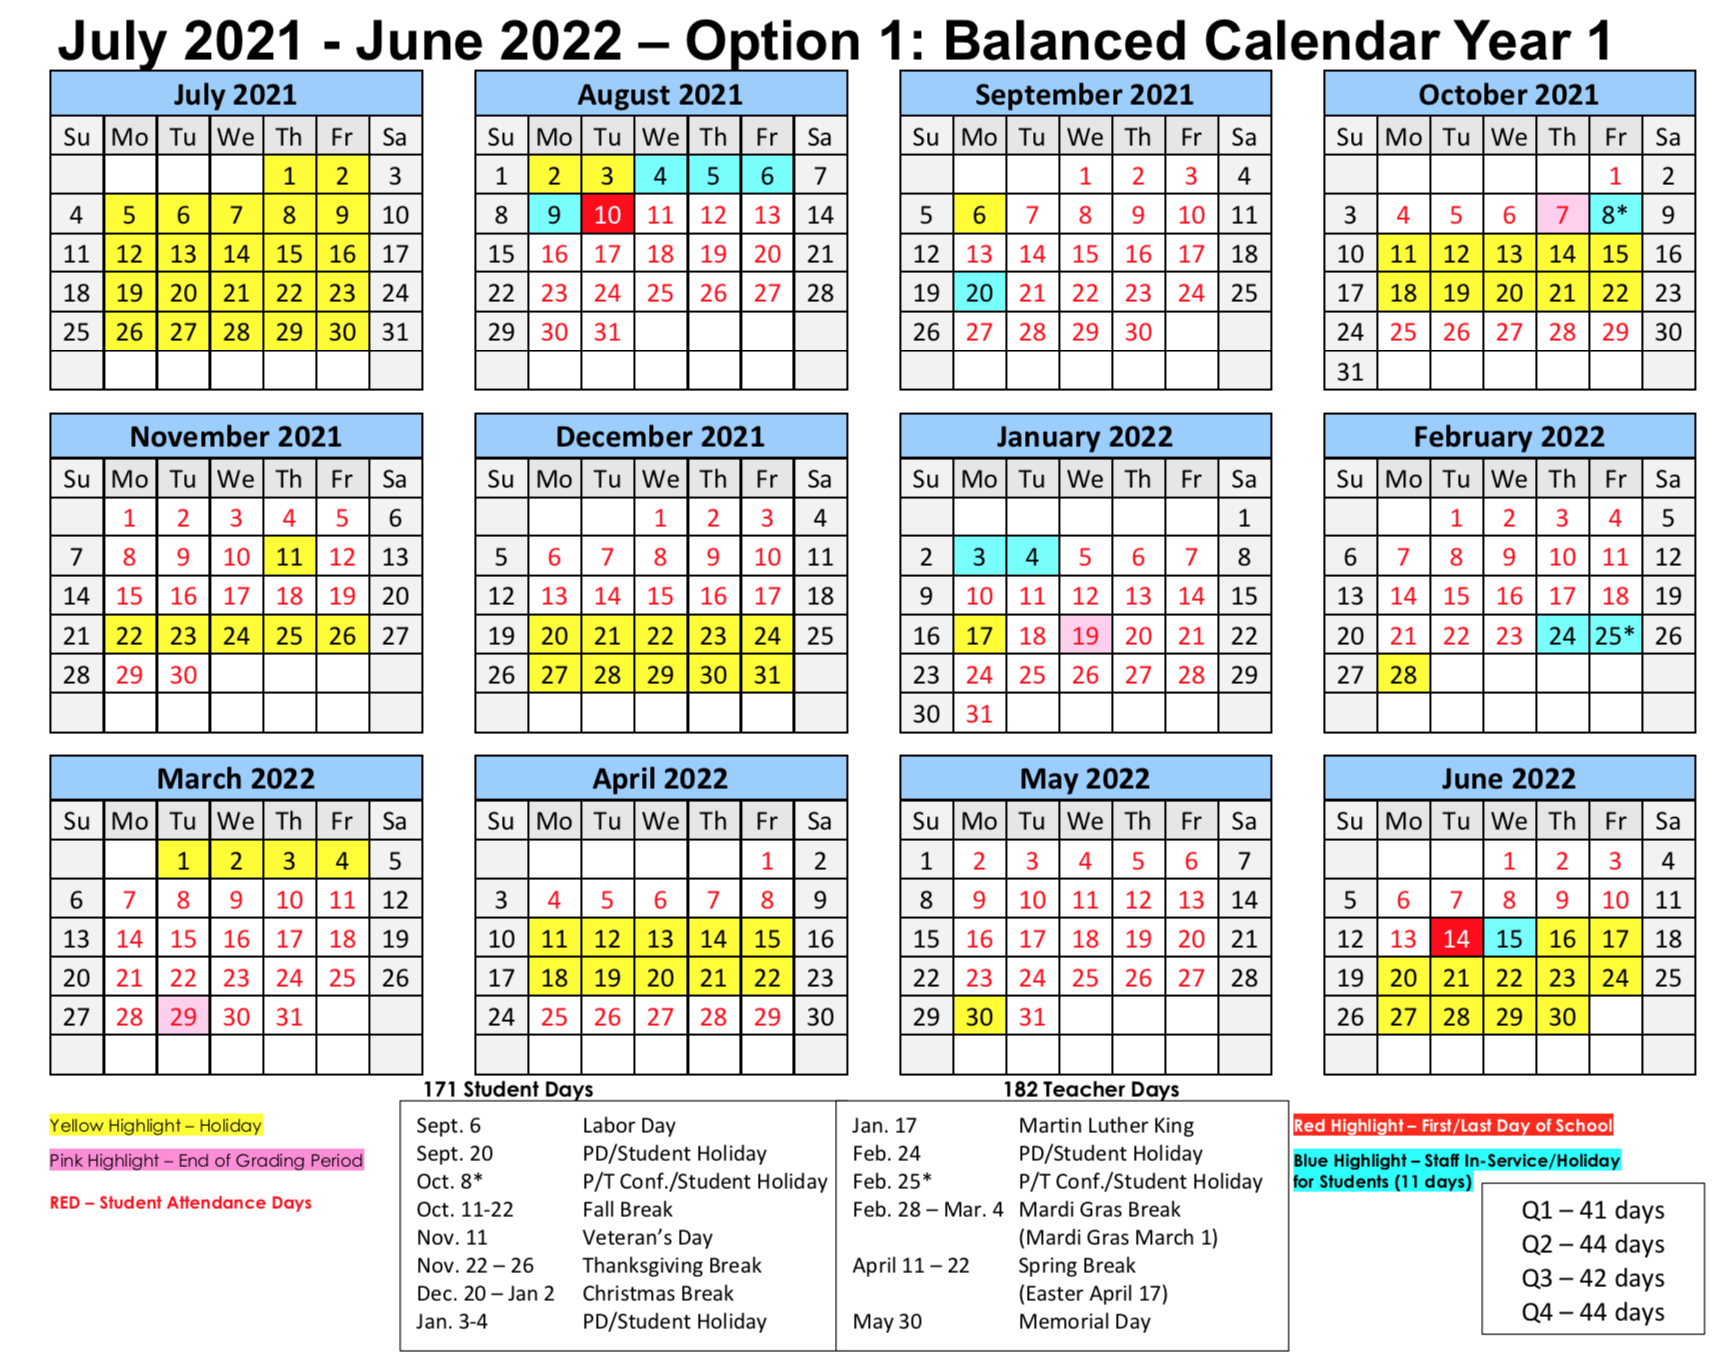 "<div style=""text-align: center;""><span style=""font-size: 18pt;"">Option 1: Balanced Calendar Year 1 - <br>To download the full 3-year balanced calendar, click <a href=""https://tinyurl.com/RPSBBalancedCalendar"" rel=""nofollow"" target=""_blank"">https://tinyurl.com/RPSBBalancedCalendar</a></span></div>"